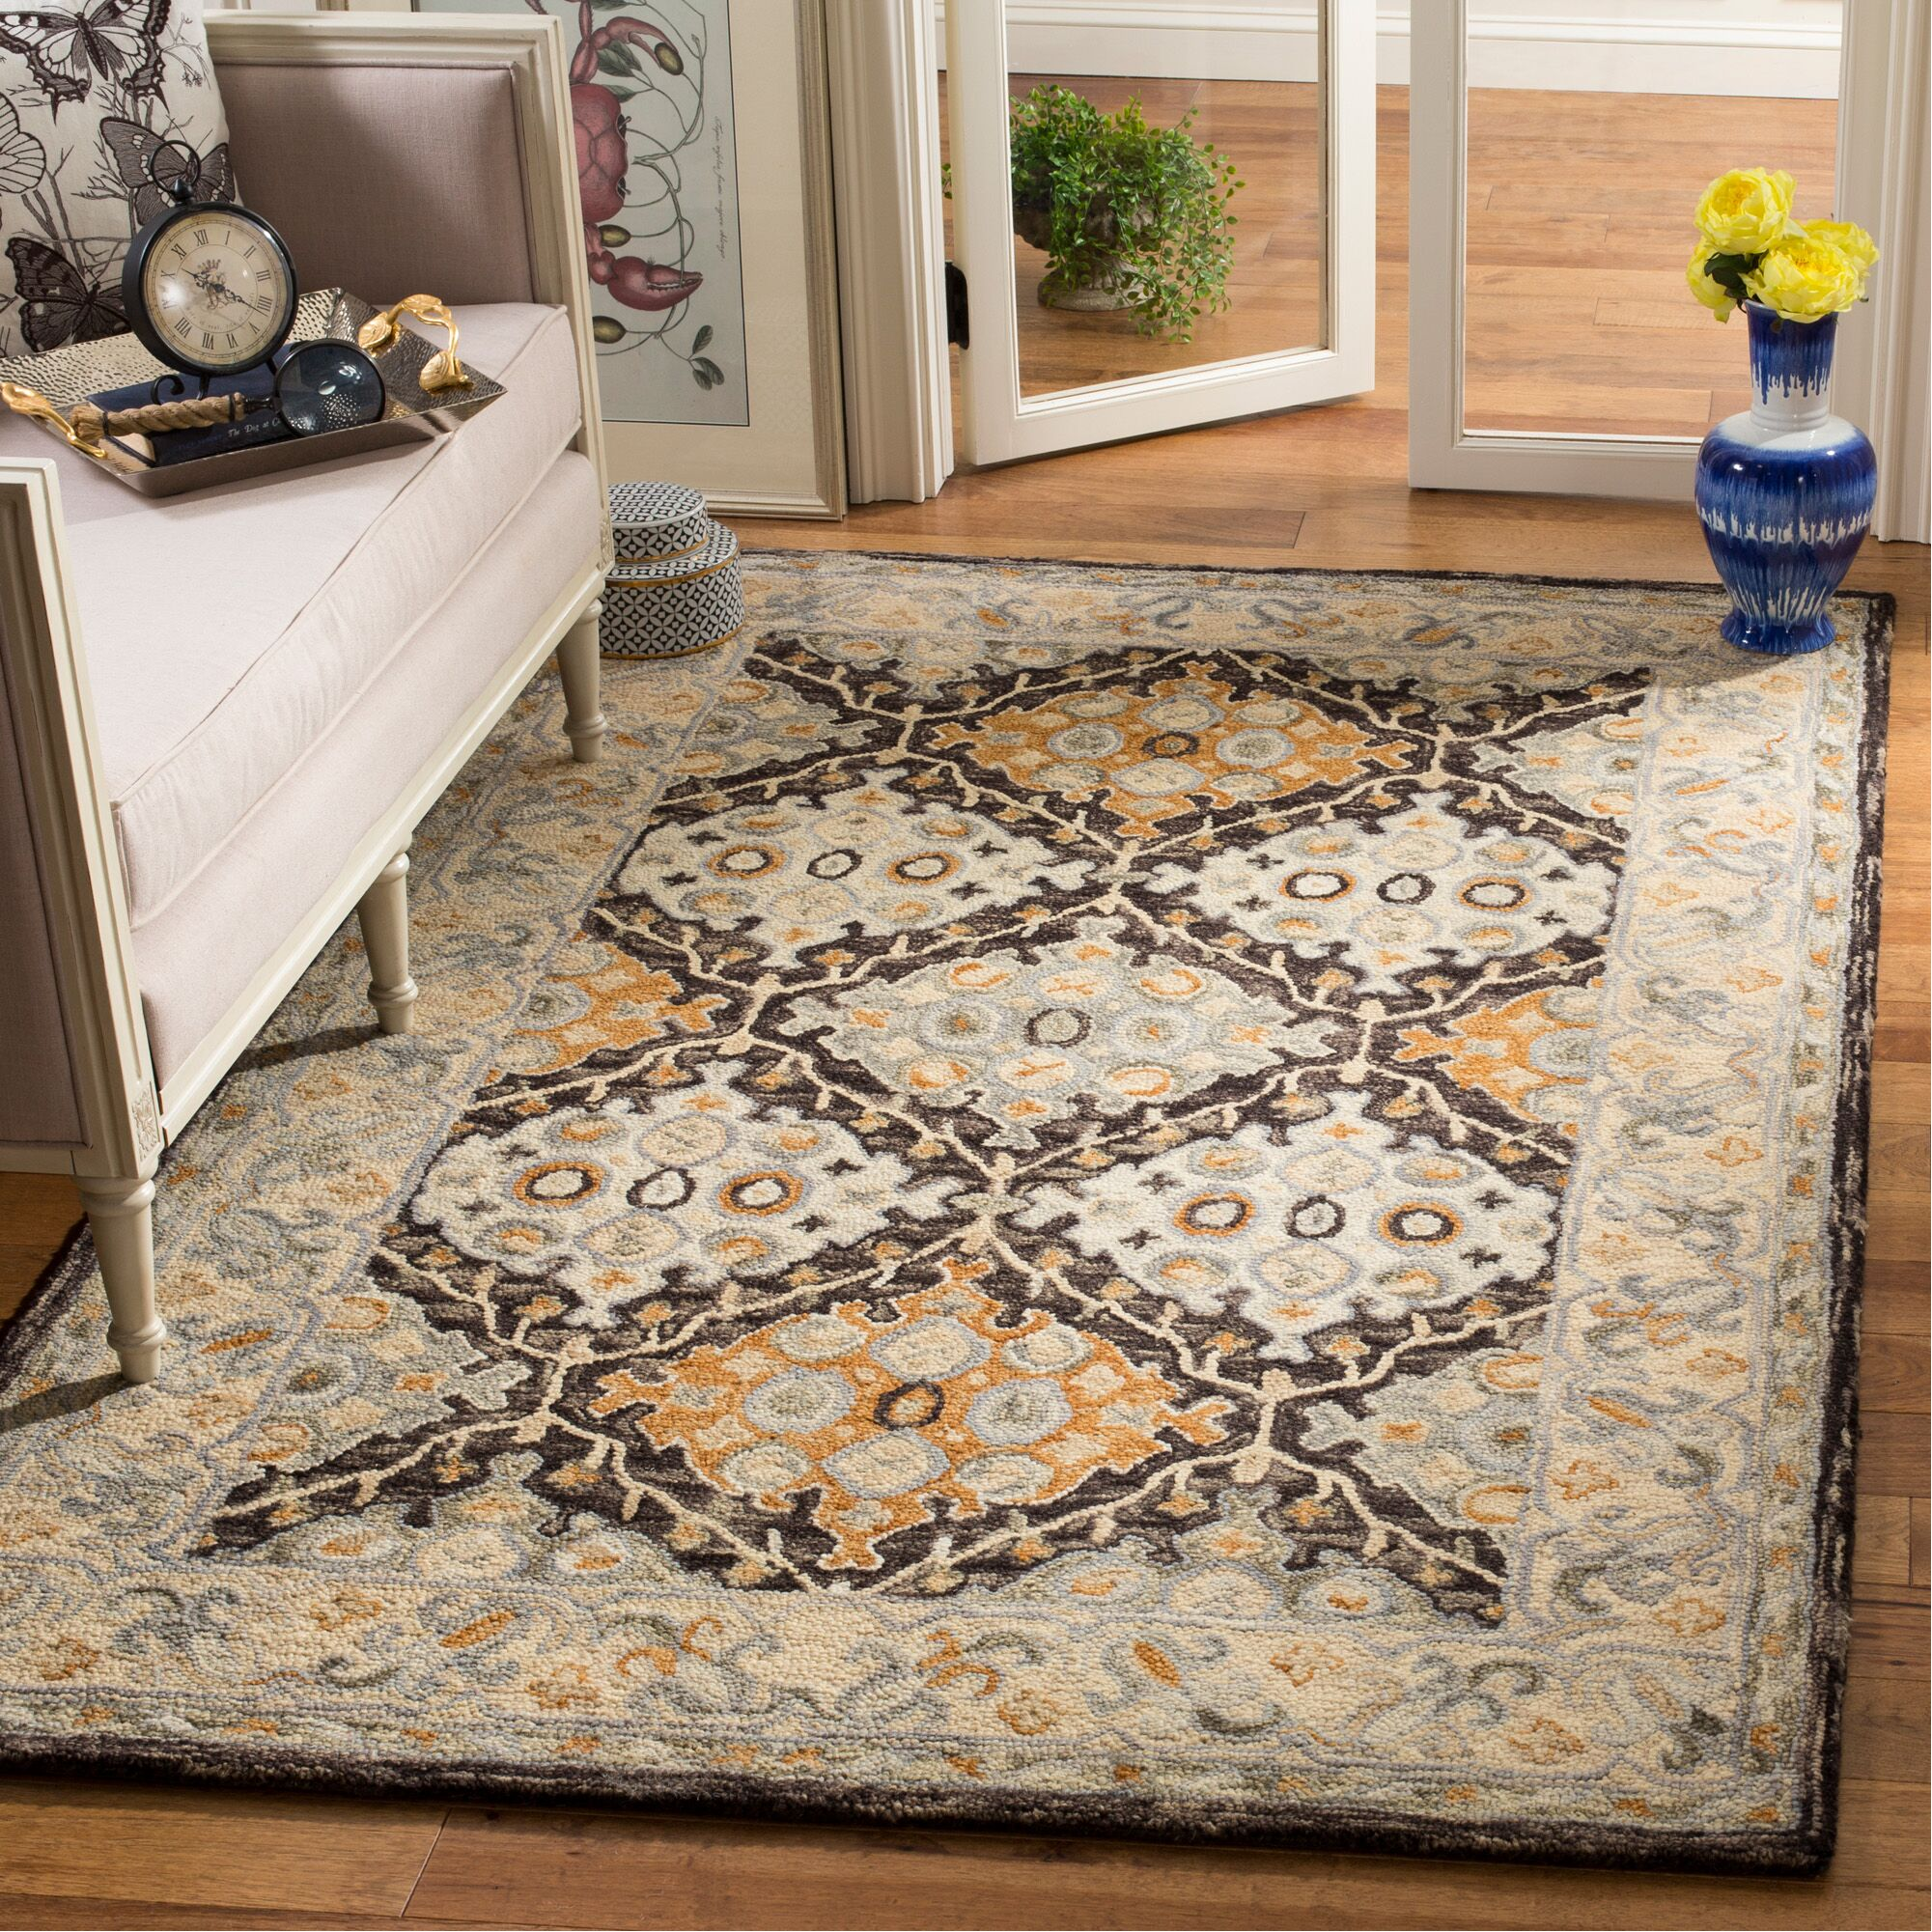 Garvin Hand-Tufted Wool Beige/Brown Area Rug Rug Size: Rectangle 4' x 6'